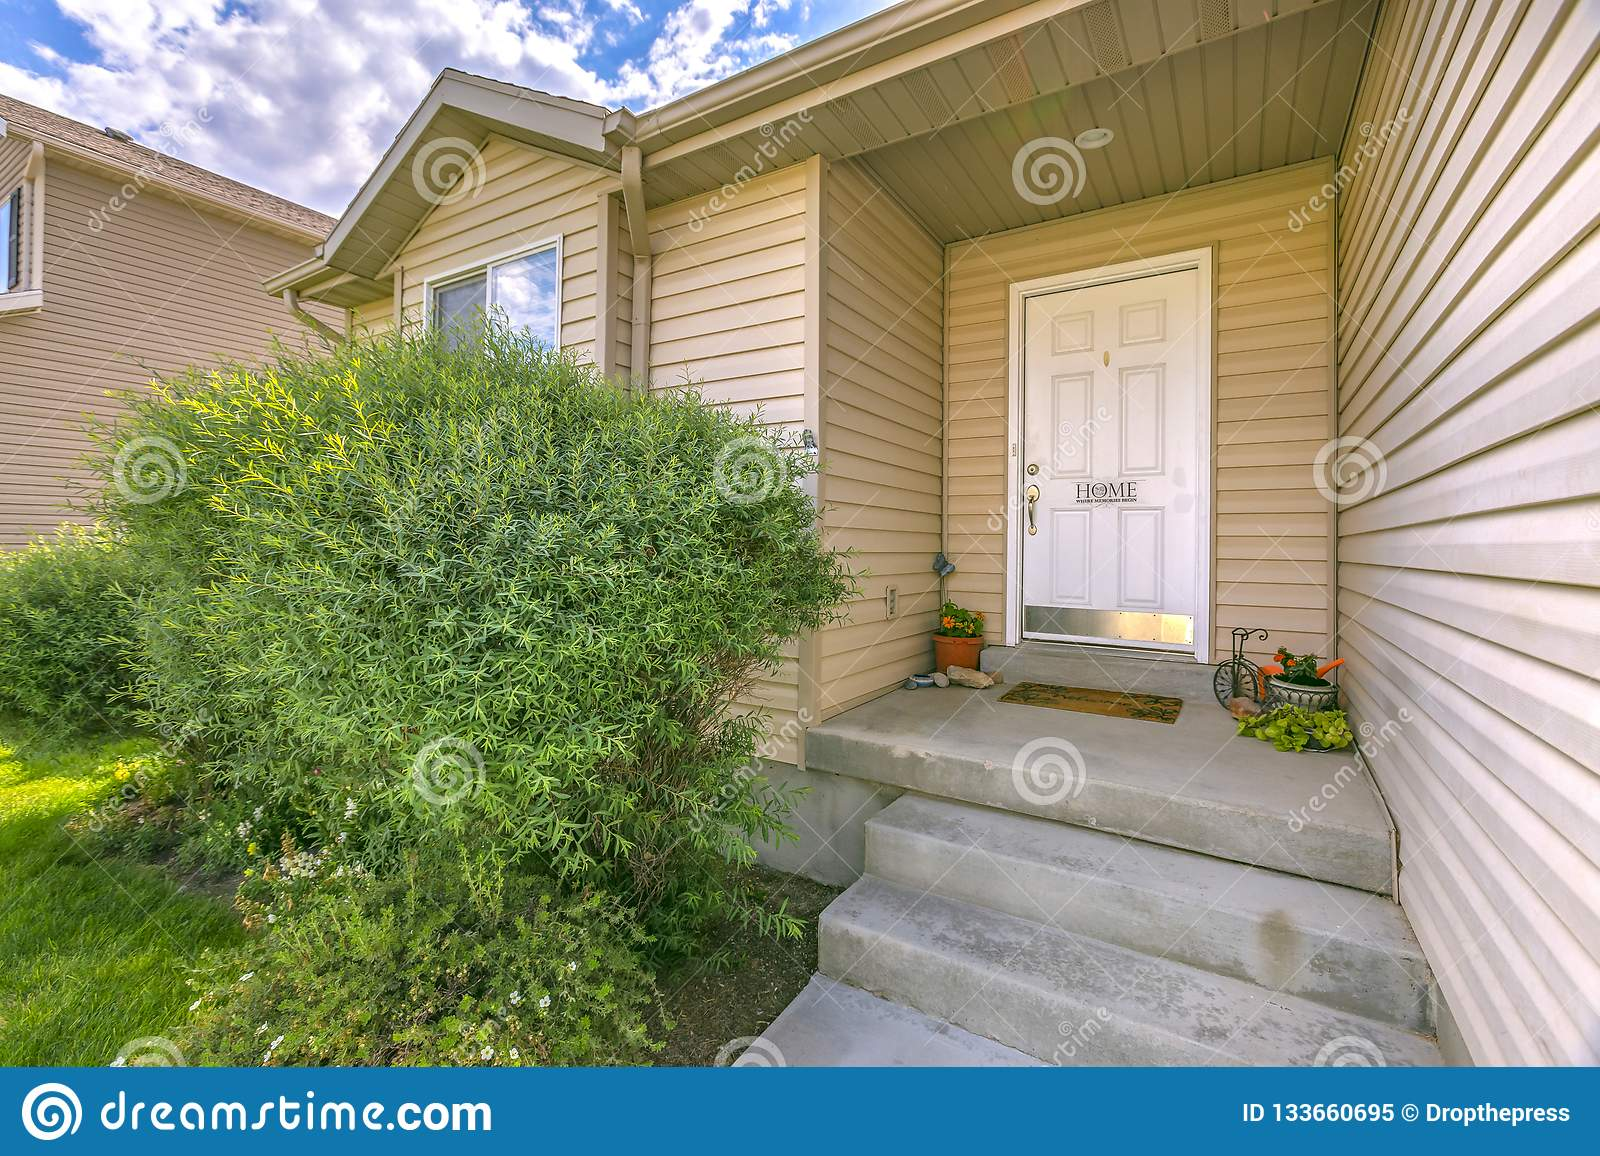 Home With Yard And Stairs Leading To Front Door Stock Image